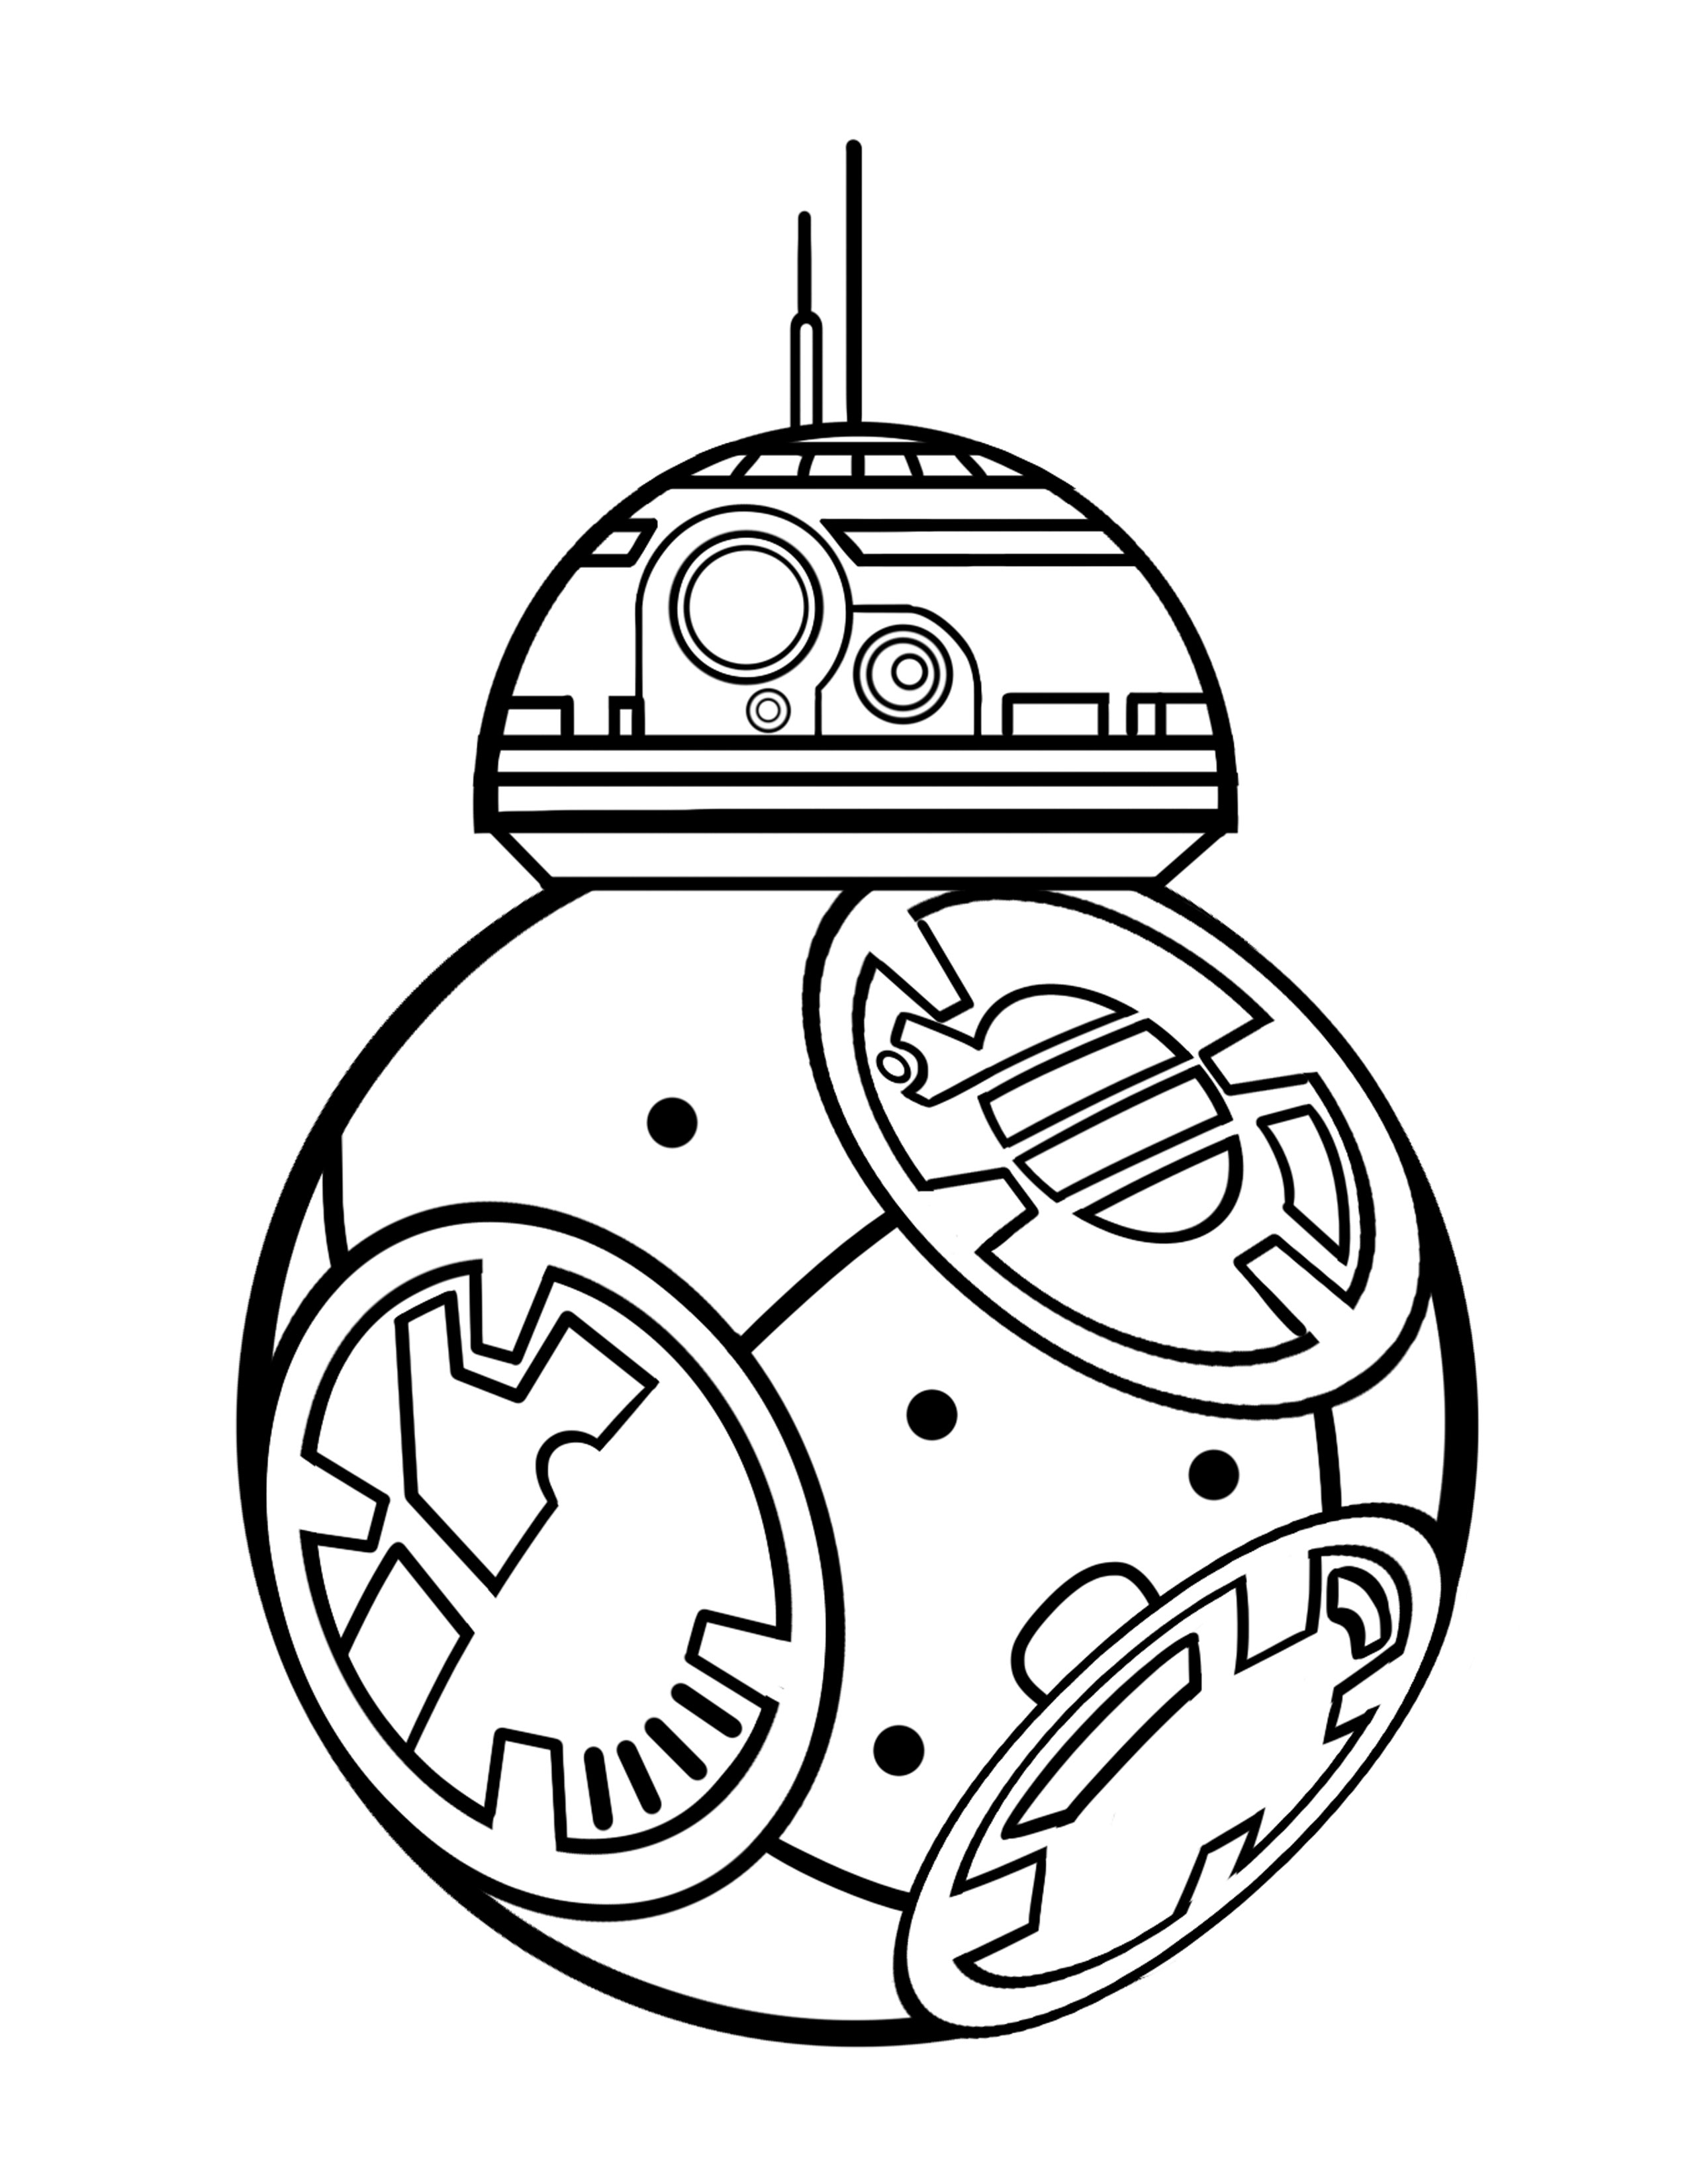 Bb8 clipart black and white. Bb drawing at getdrawings